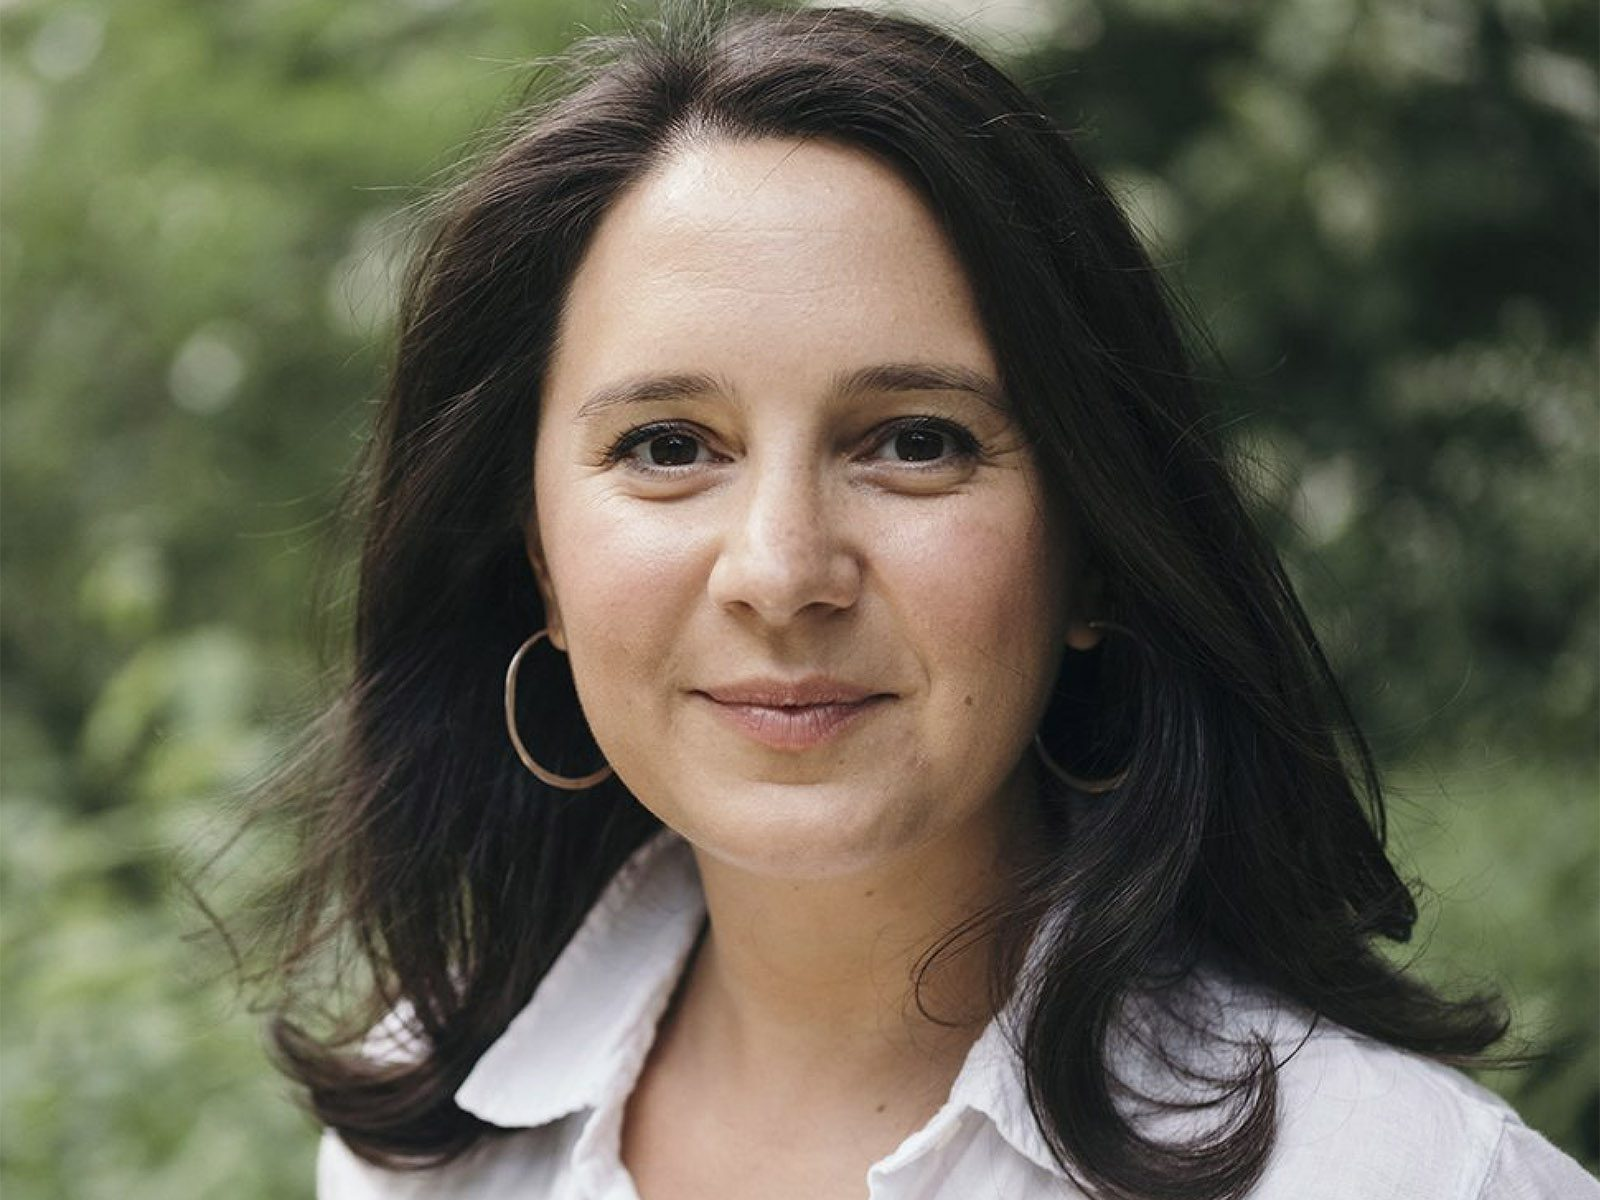 Portrait of Bari Weiss outdoors, with tree foliage in the background.